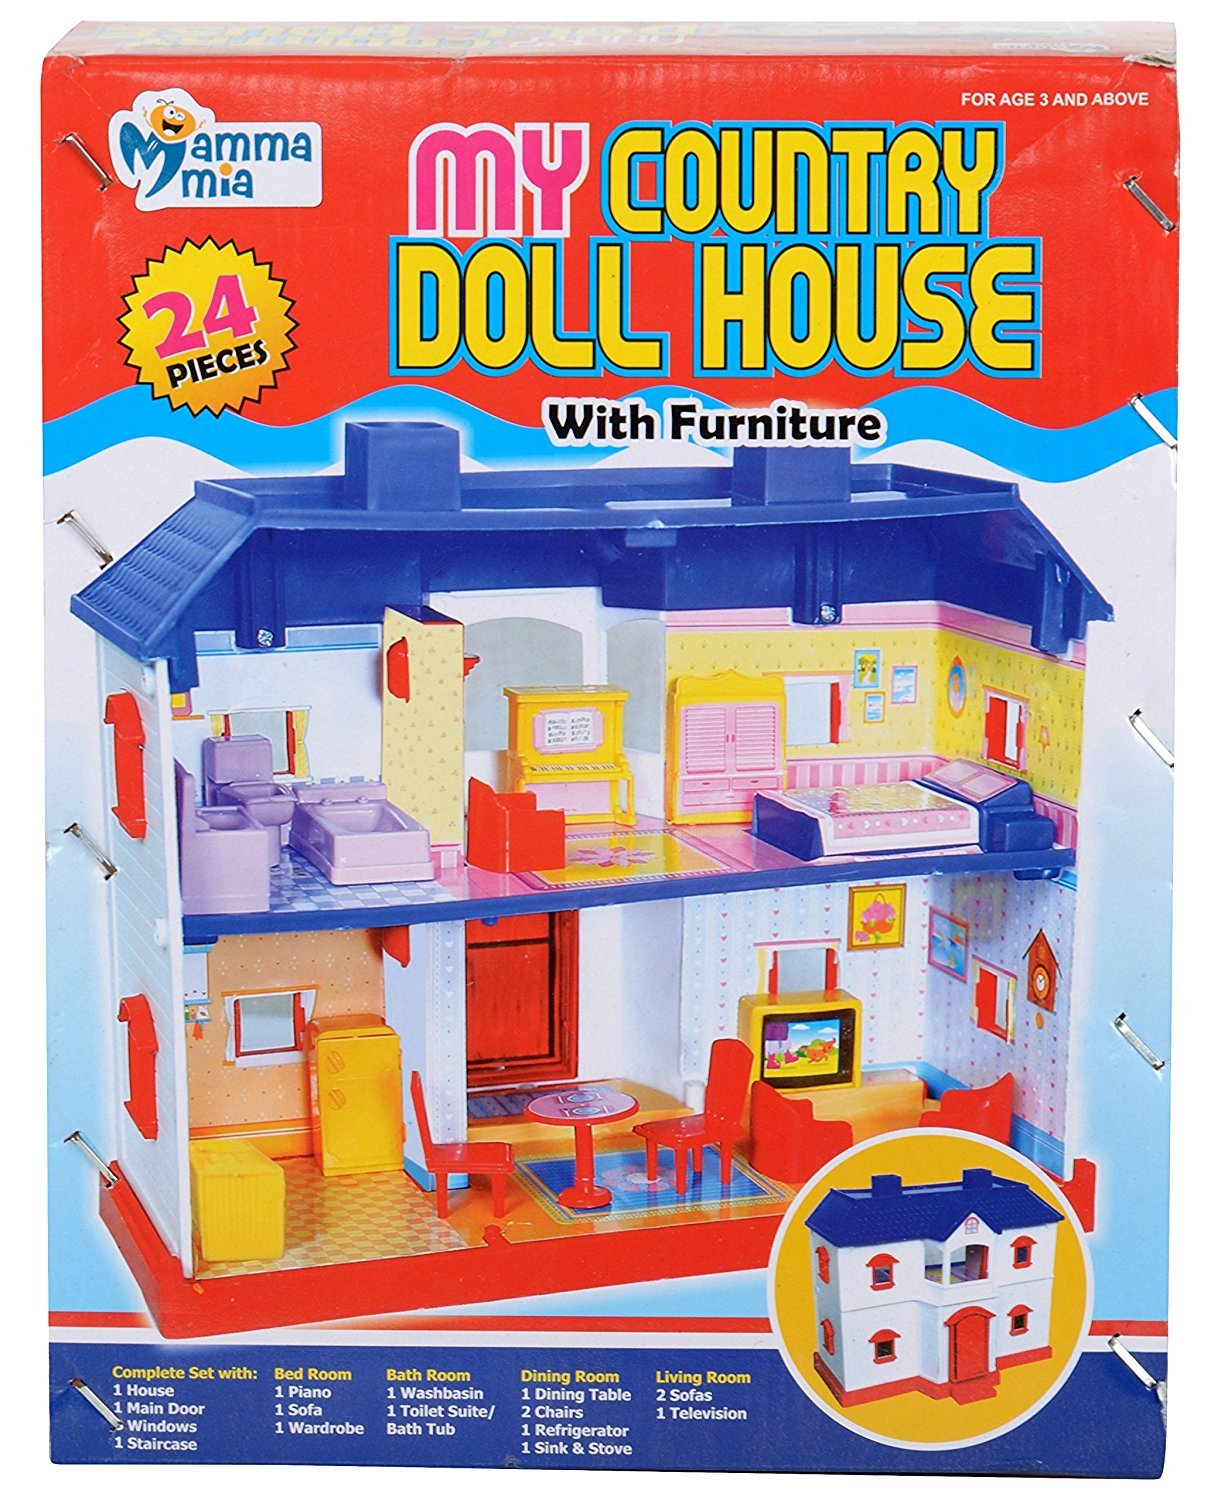 Pcs Deluxe Of At Doll Set 24 Clastik My Country Buy House Online zjqMVUpSLG